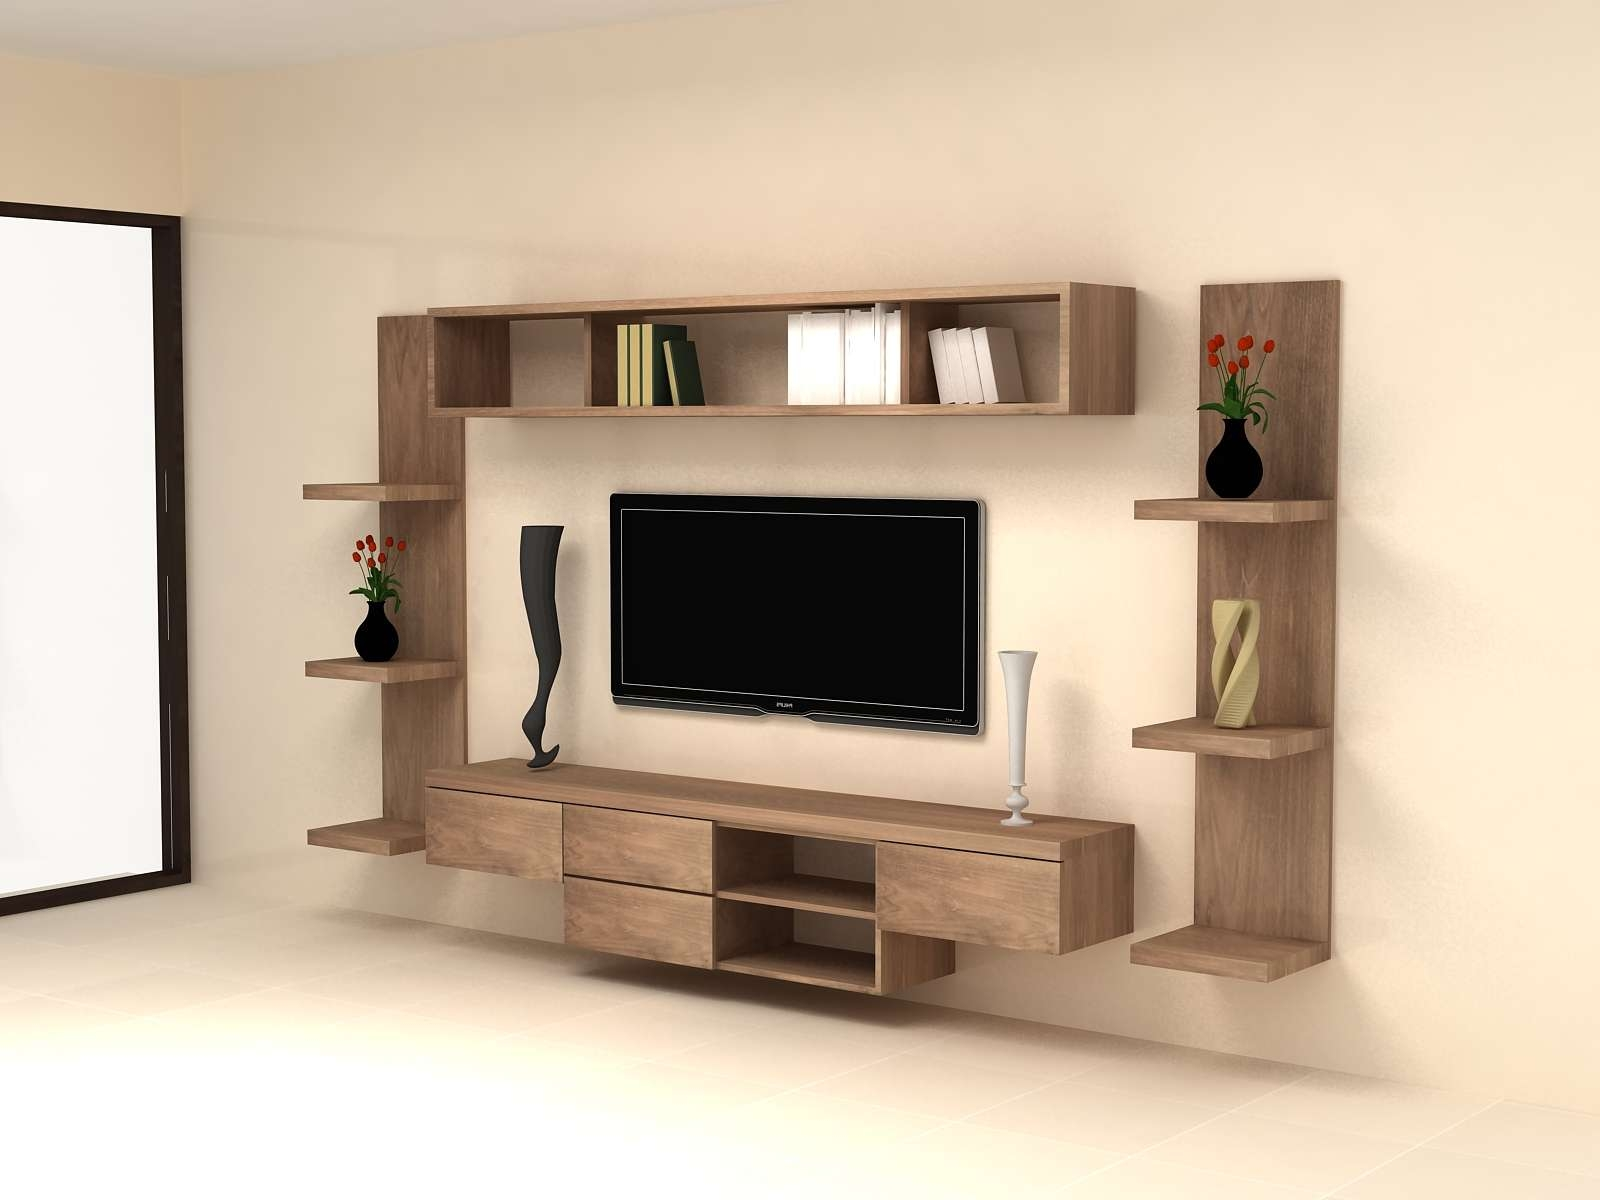 20 photos contemporary tv cabinets. Black Bedroom Furniture Sets. Home Design Ideas